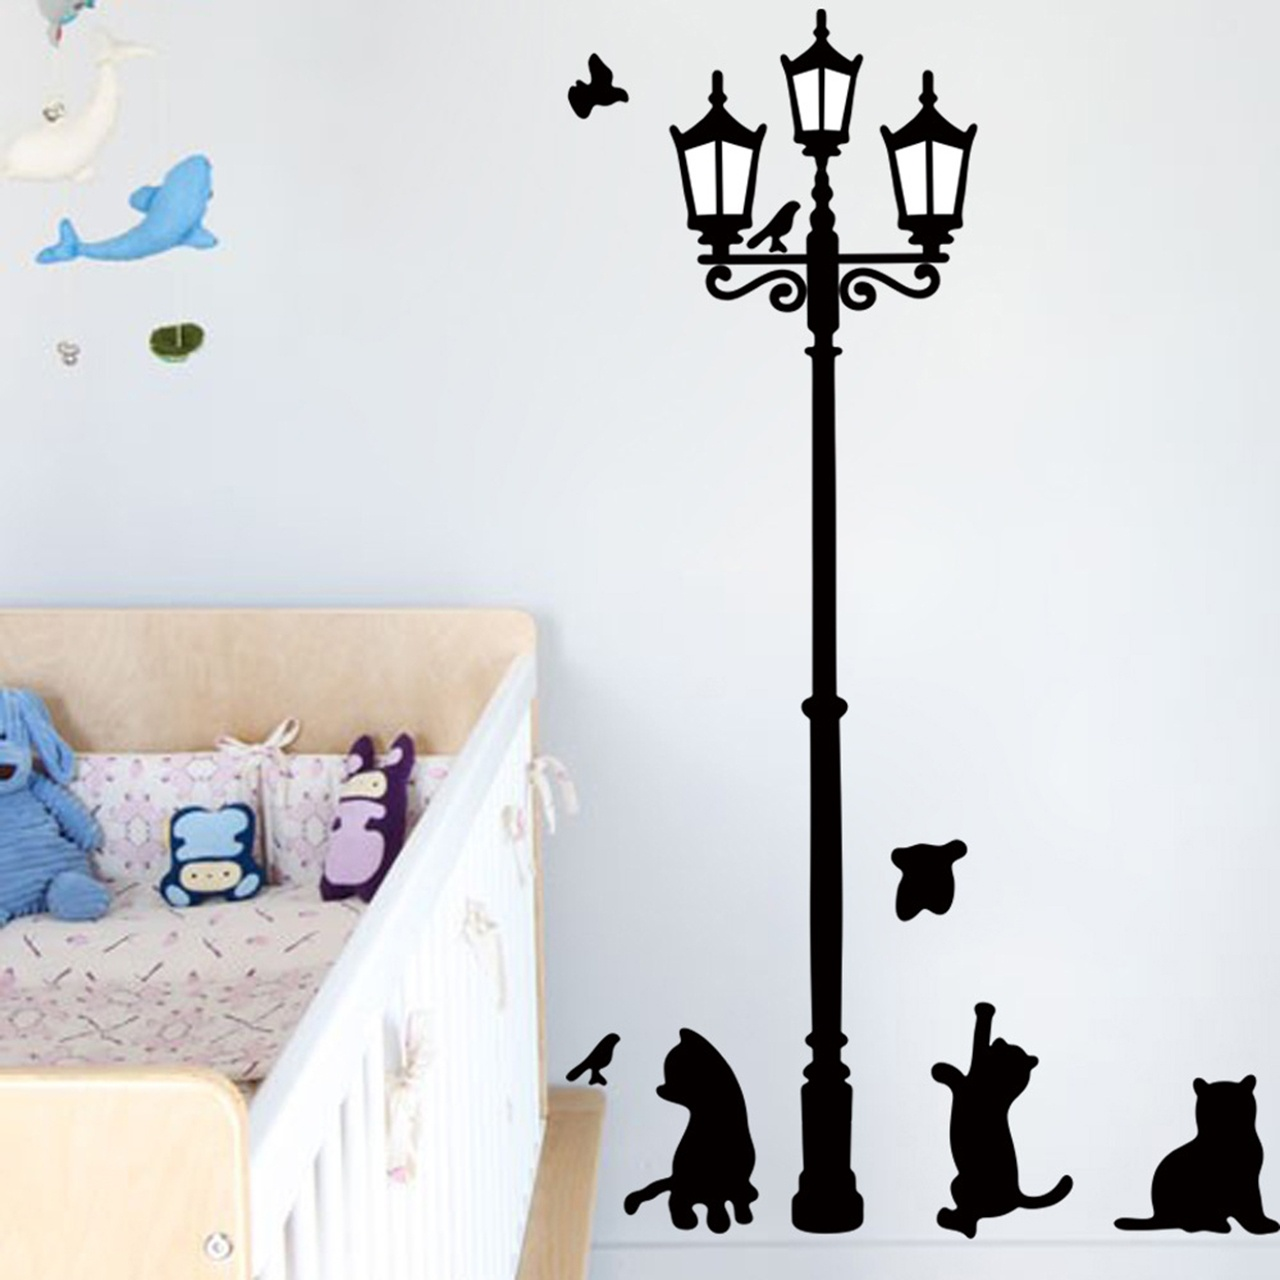 Cats Street Lamp Lighs Stickers Wall Decal Removable Art Vinyl Mural Decal Decor